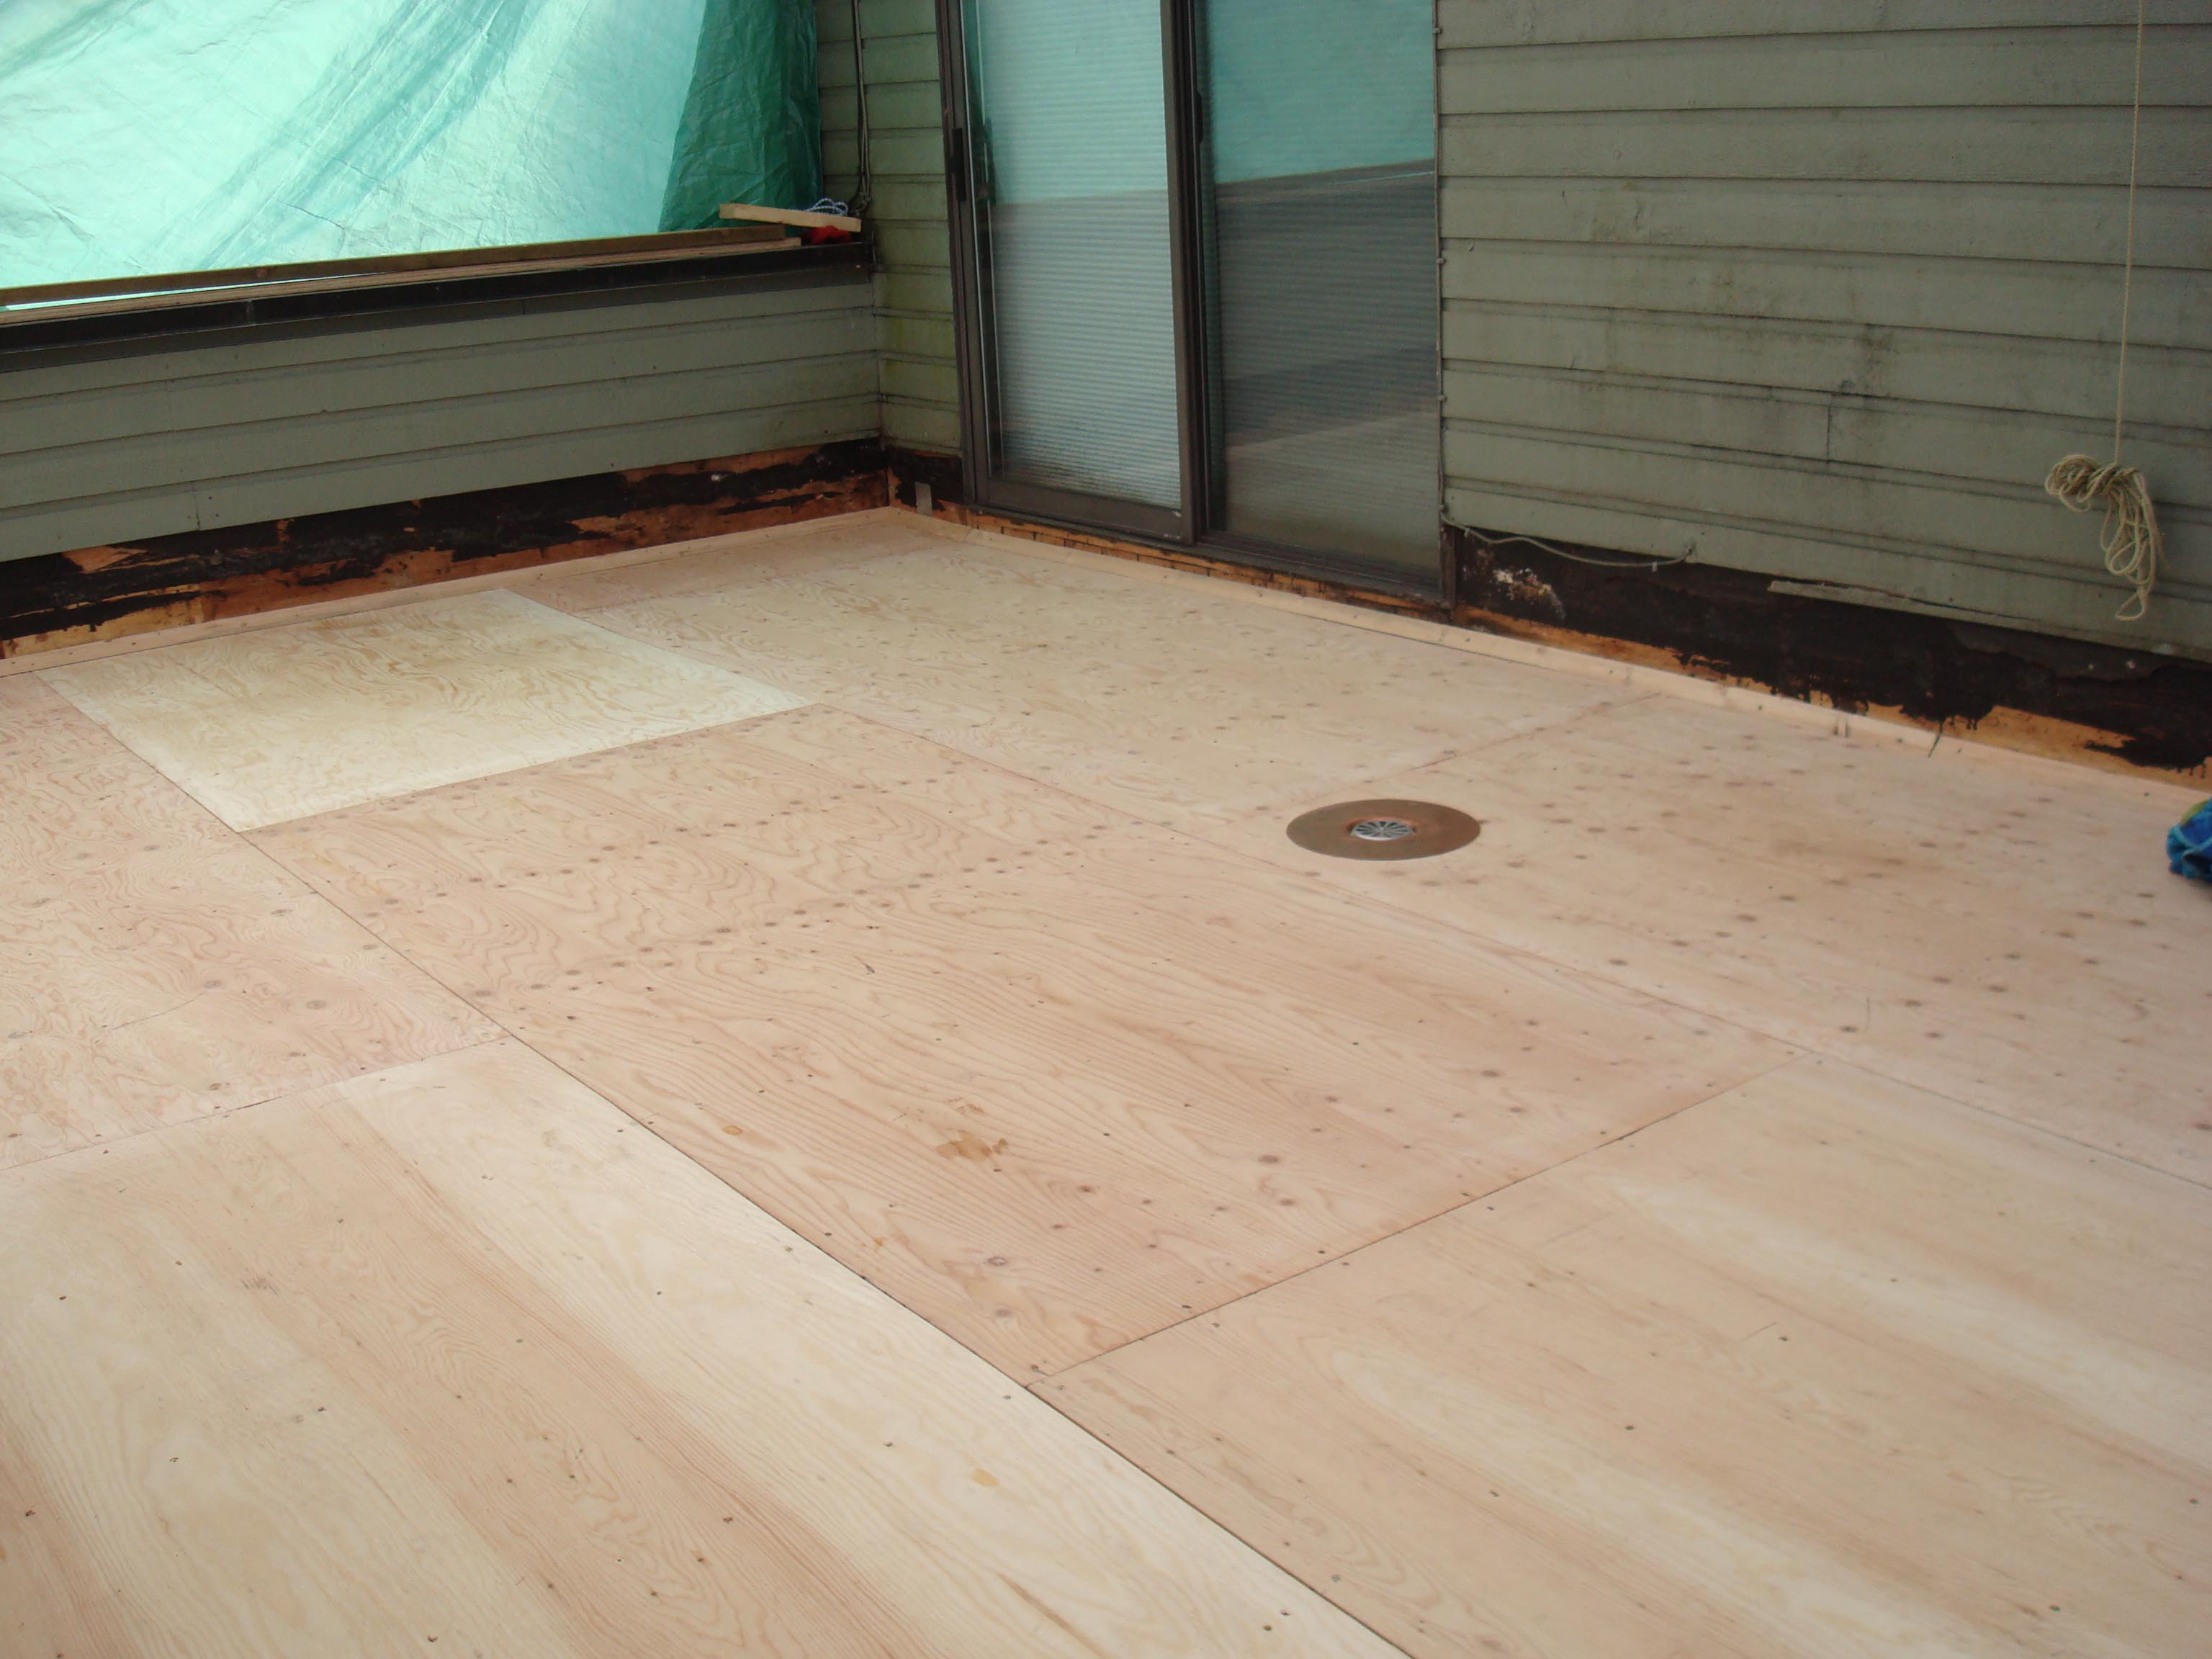 waterproof deck coating for plywood